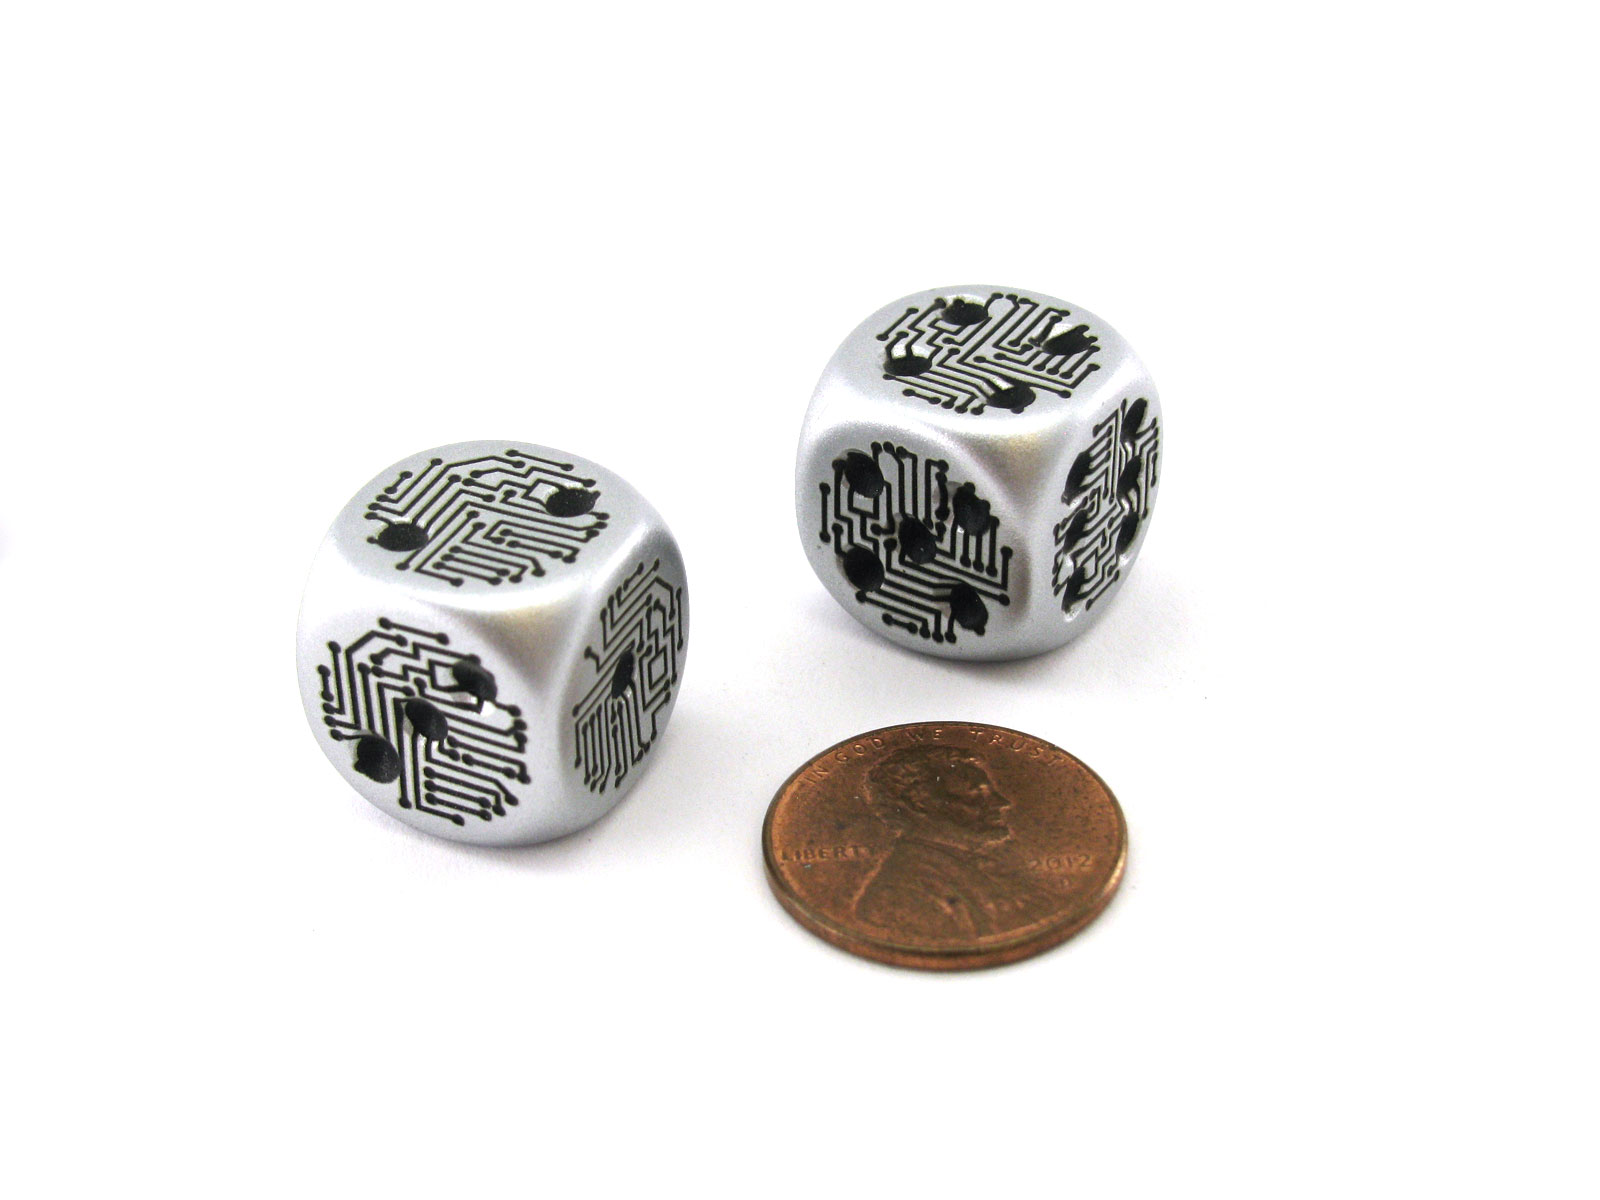 Silver Pack of 2 Circuit Design D6 Dice with Thin Metal-Plating Over Plastic